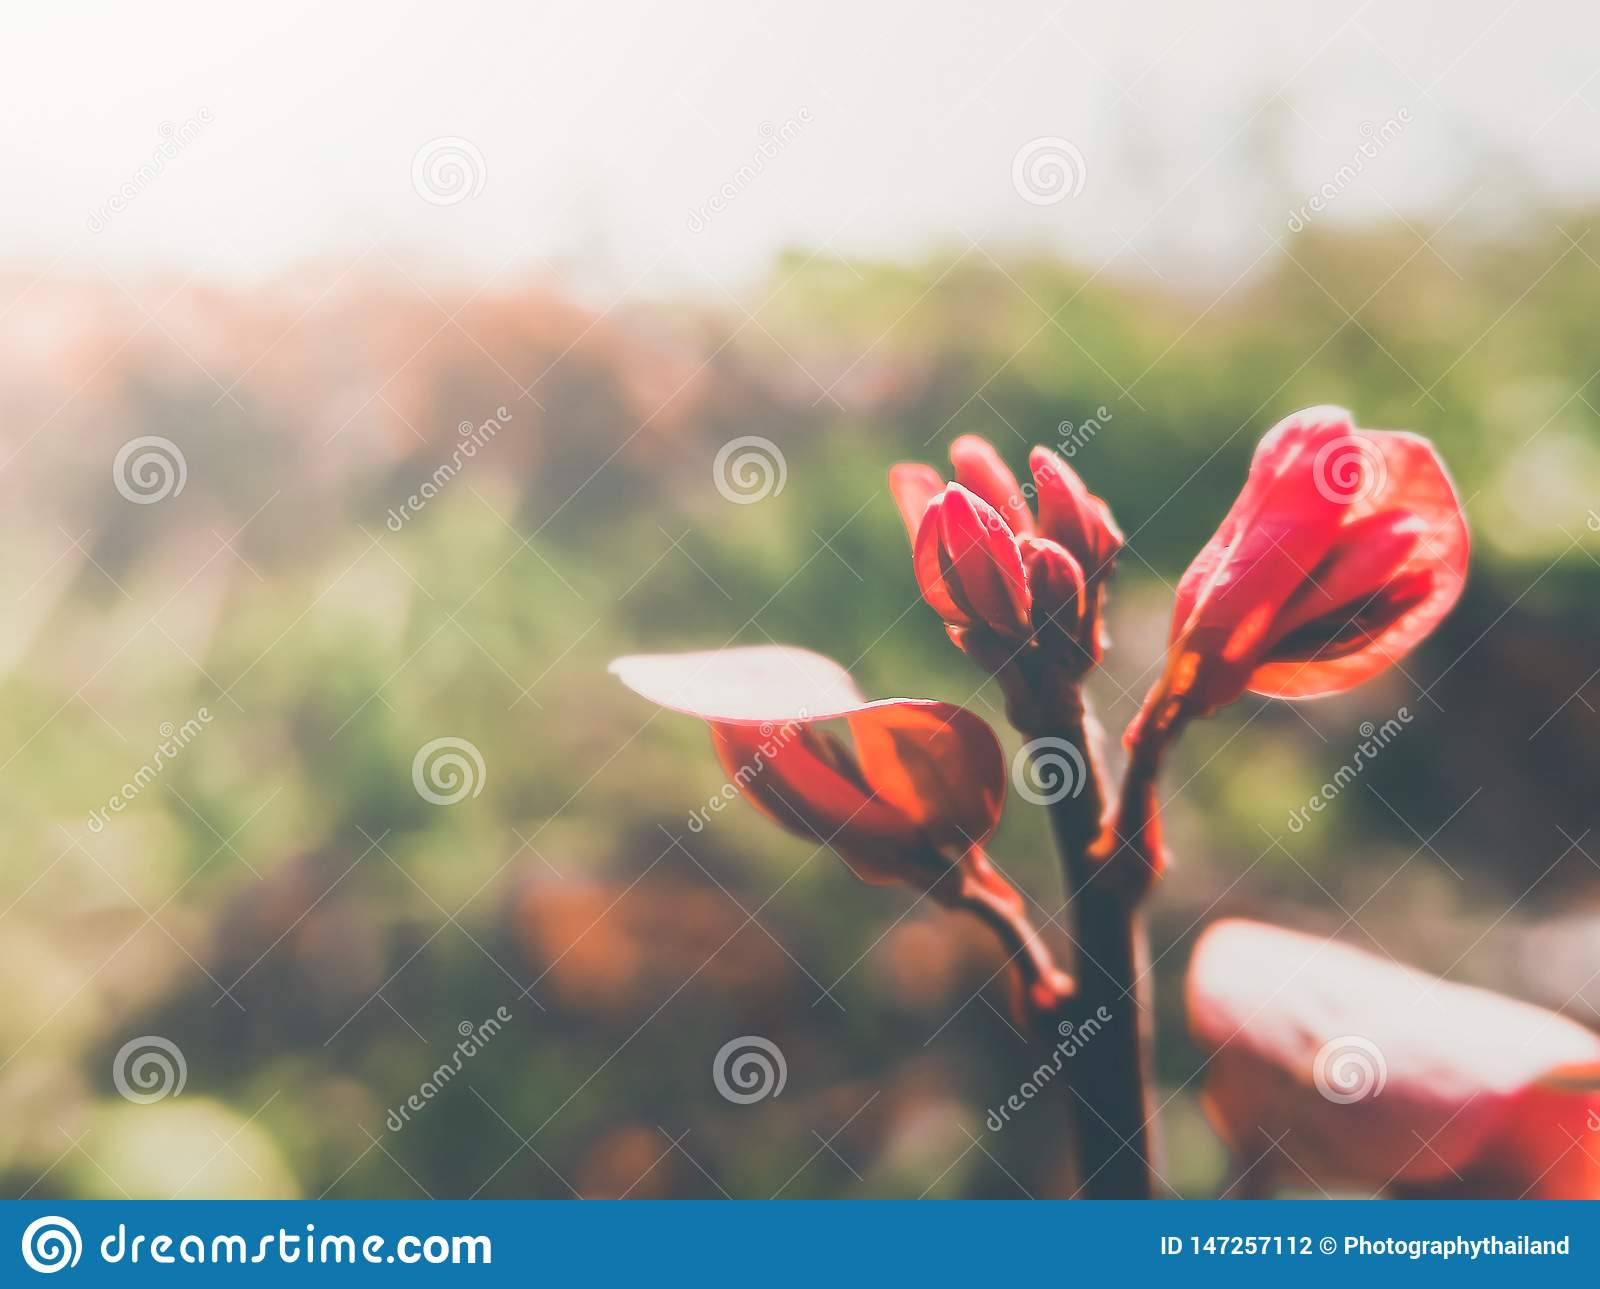 Vintage color image red young leaves and natural light background.